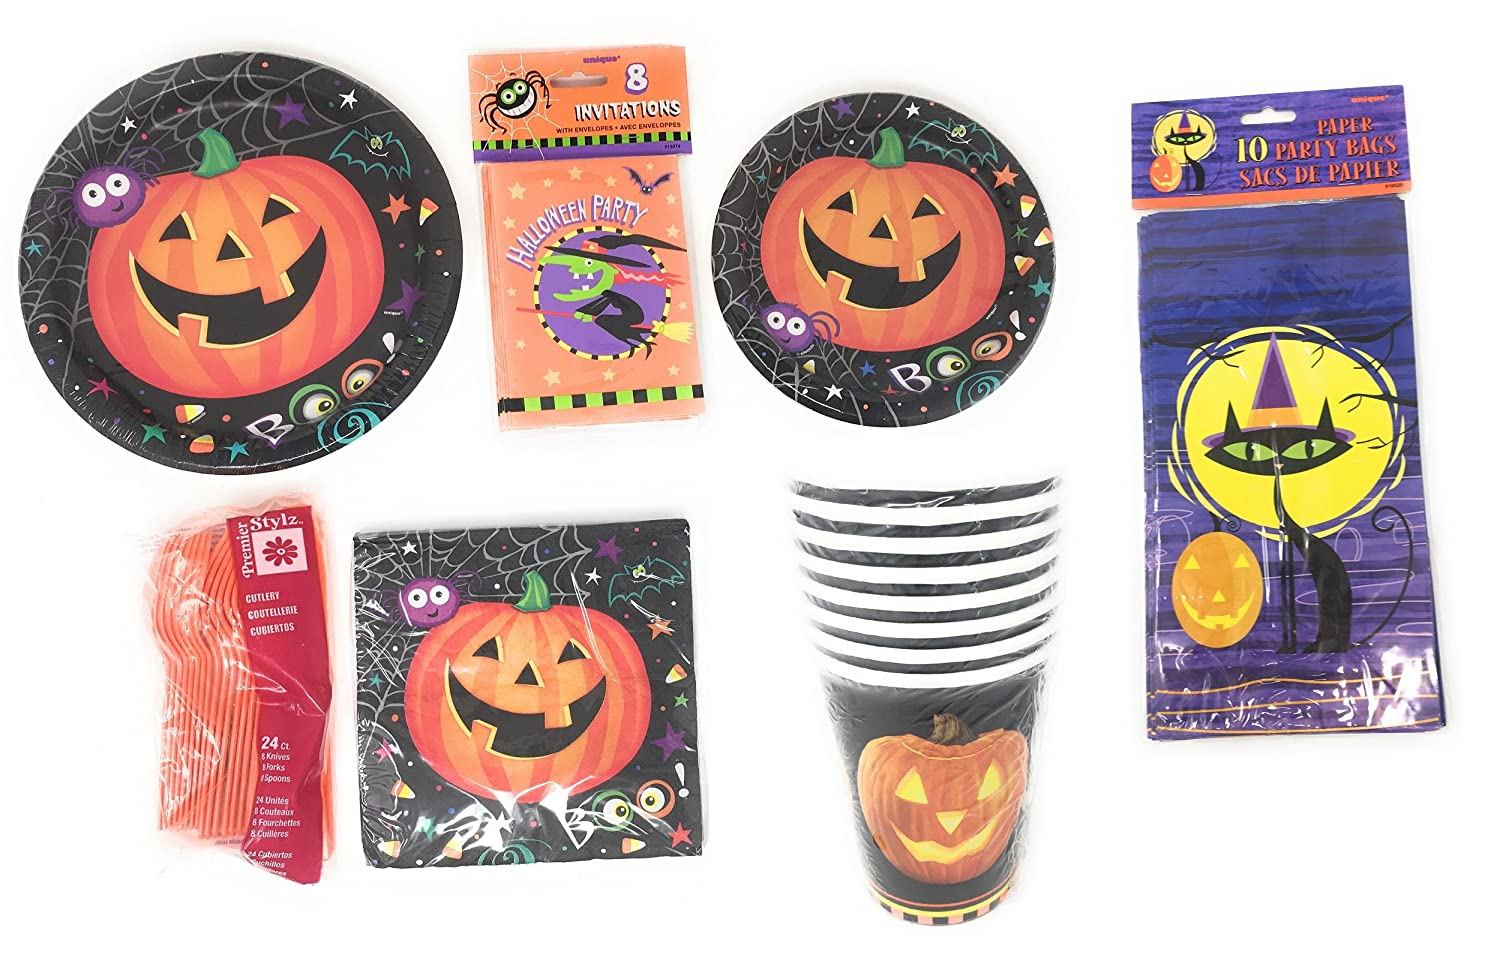 Amazon.com: Pumpkin Pals Halloween Mega Party Bundle: 16 Invitations, 16 Pumpkin Pals Dinner Plates and Lunch Plates With 16 Matching Napkins, 20 Goody Bags ...